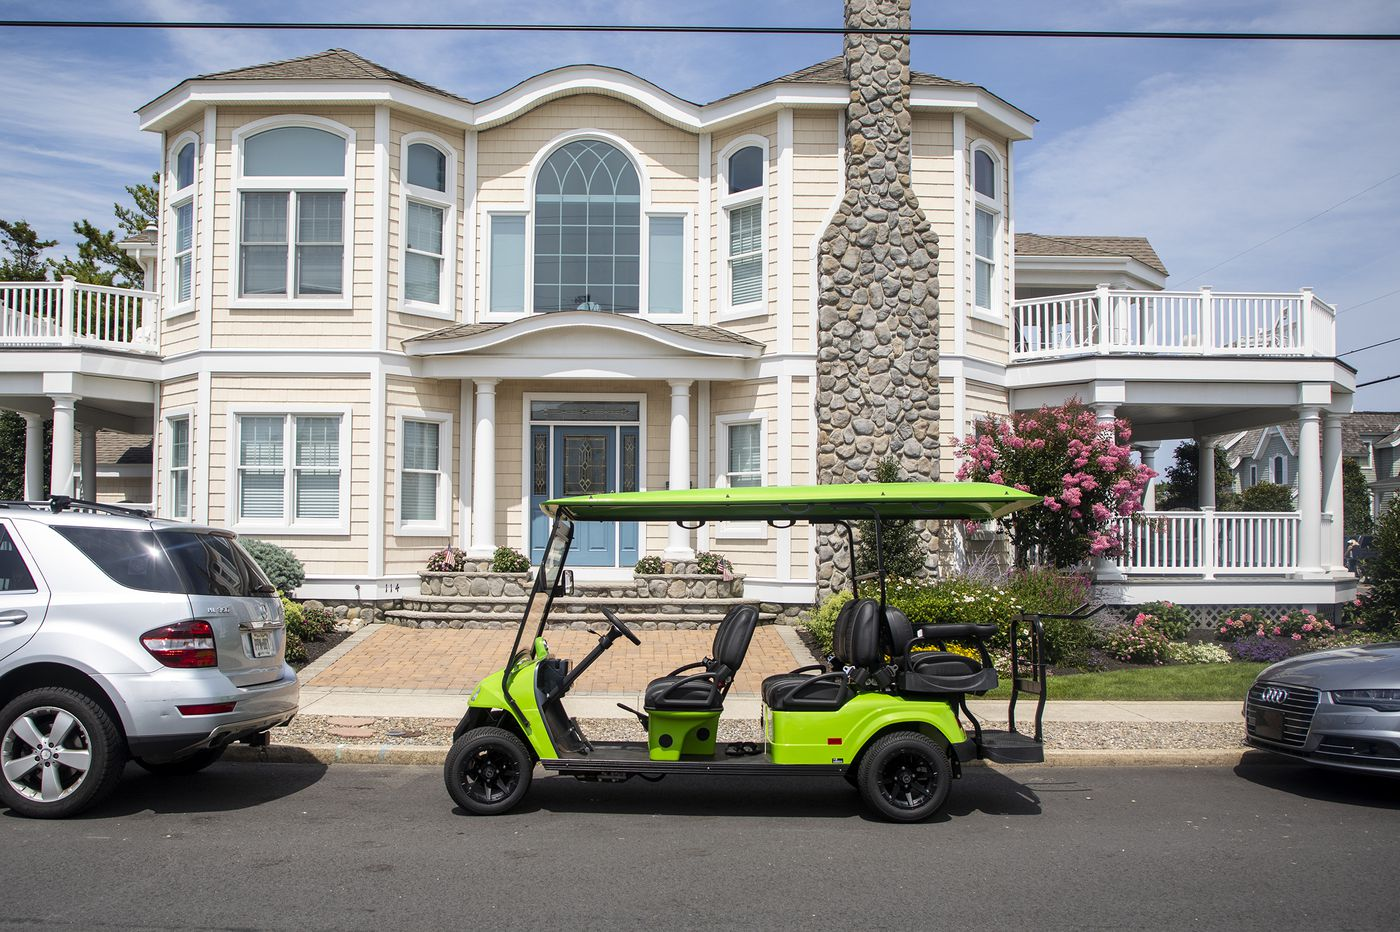 Don't call it a golf cart: Down the Shore, 'the cool, new toy' is a low-speed electric vehicle